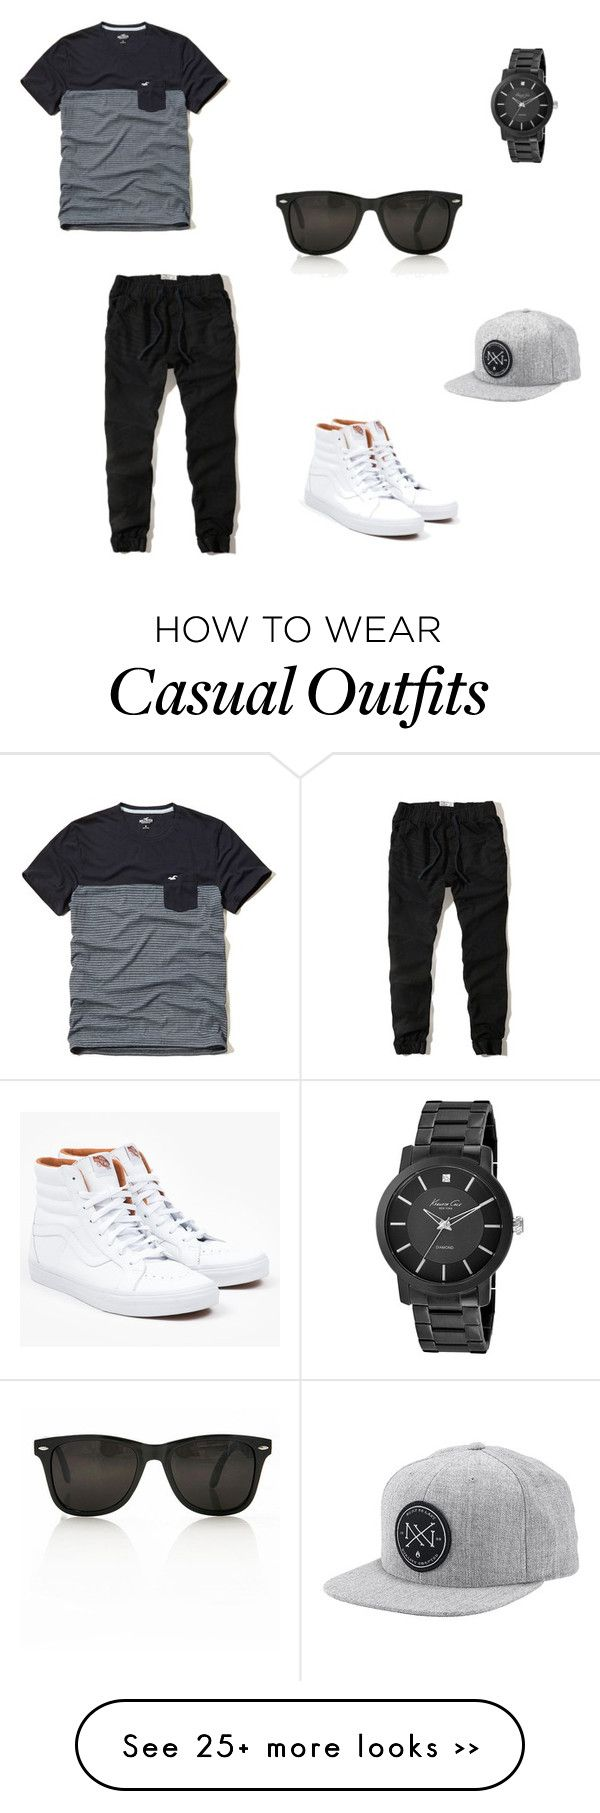 """""""Casual day for guys"""" by omgherica on Polyvore featuring Hollister Co., Vans, Nixon and Kenneth Cole"""